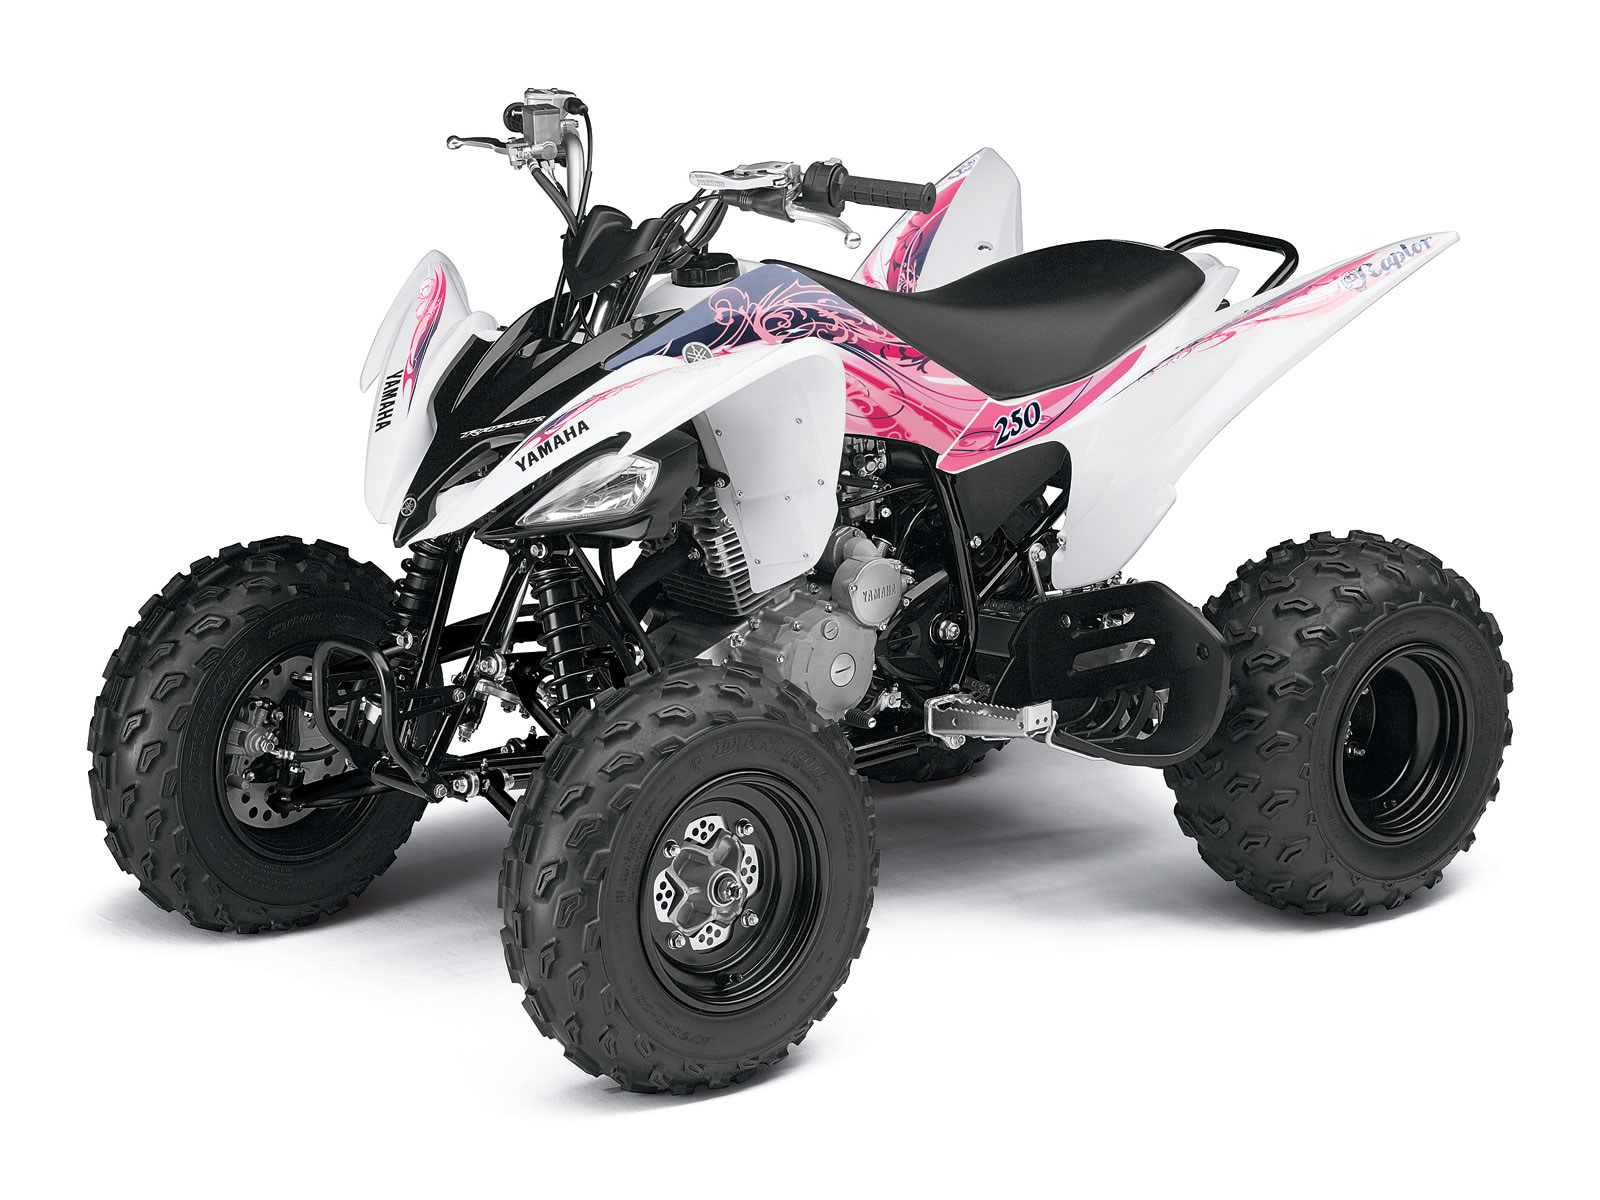 2011 YAMAHA Raptor 250 pictures specs ATV accident lawyers 1600x1200